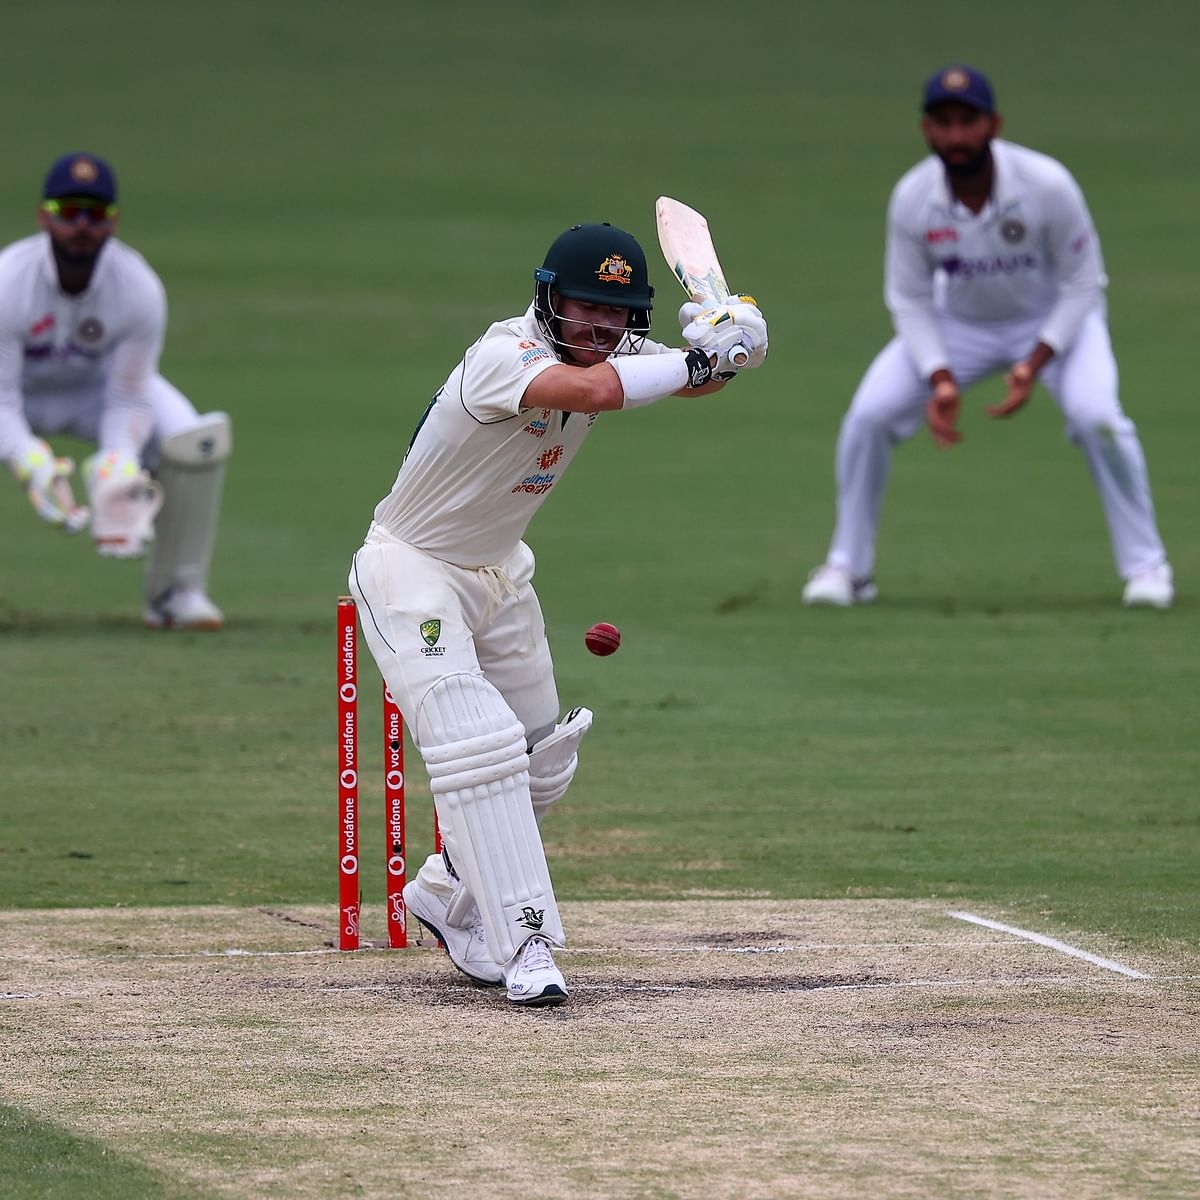 Ind vs Aus, 4th Test: India strike back to reduce Australia to 149/4 at lunch, home team lead by 182